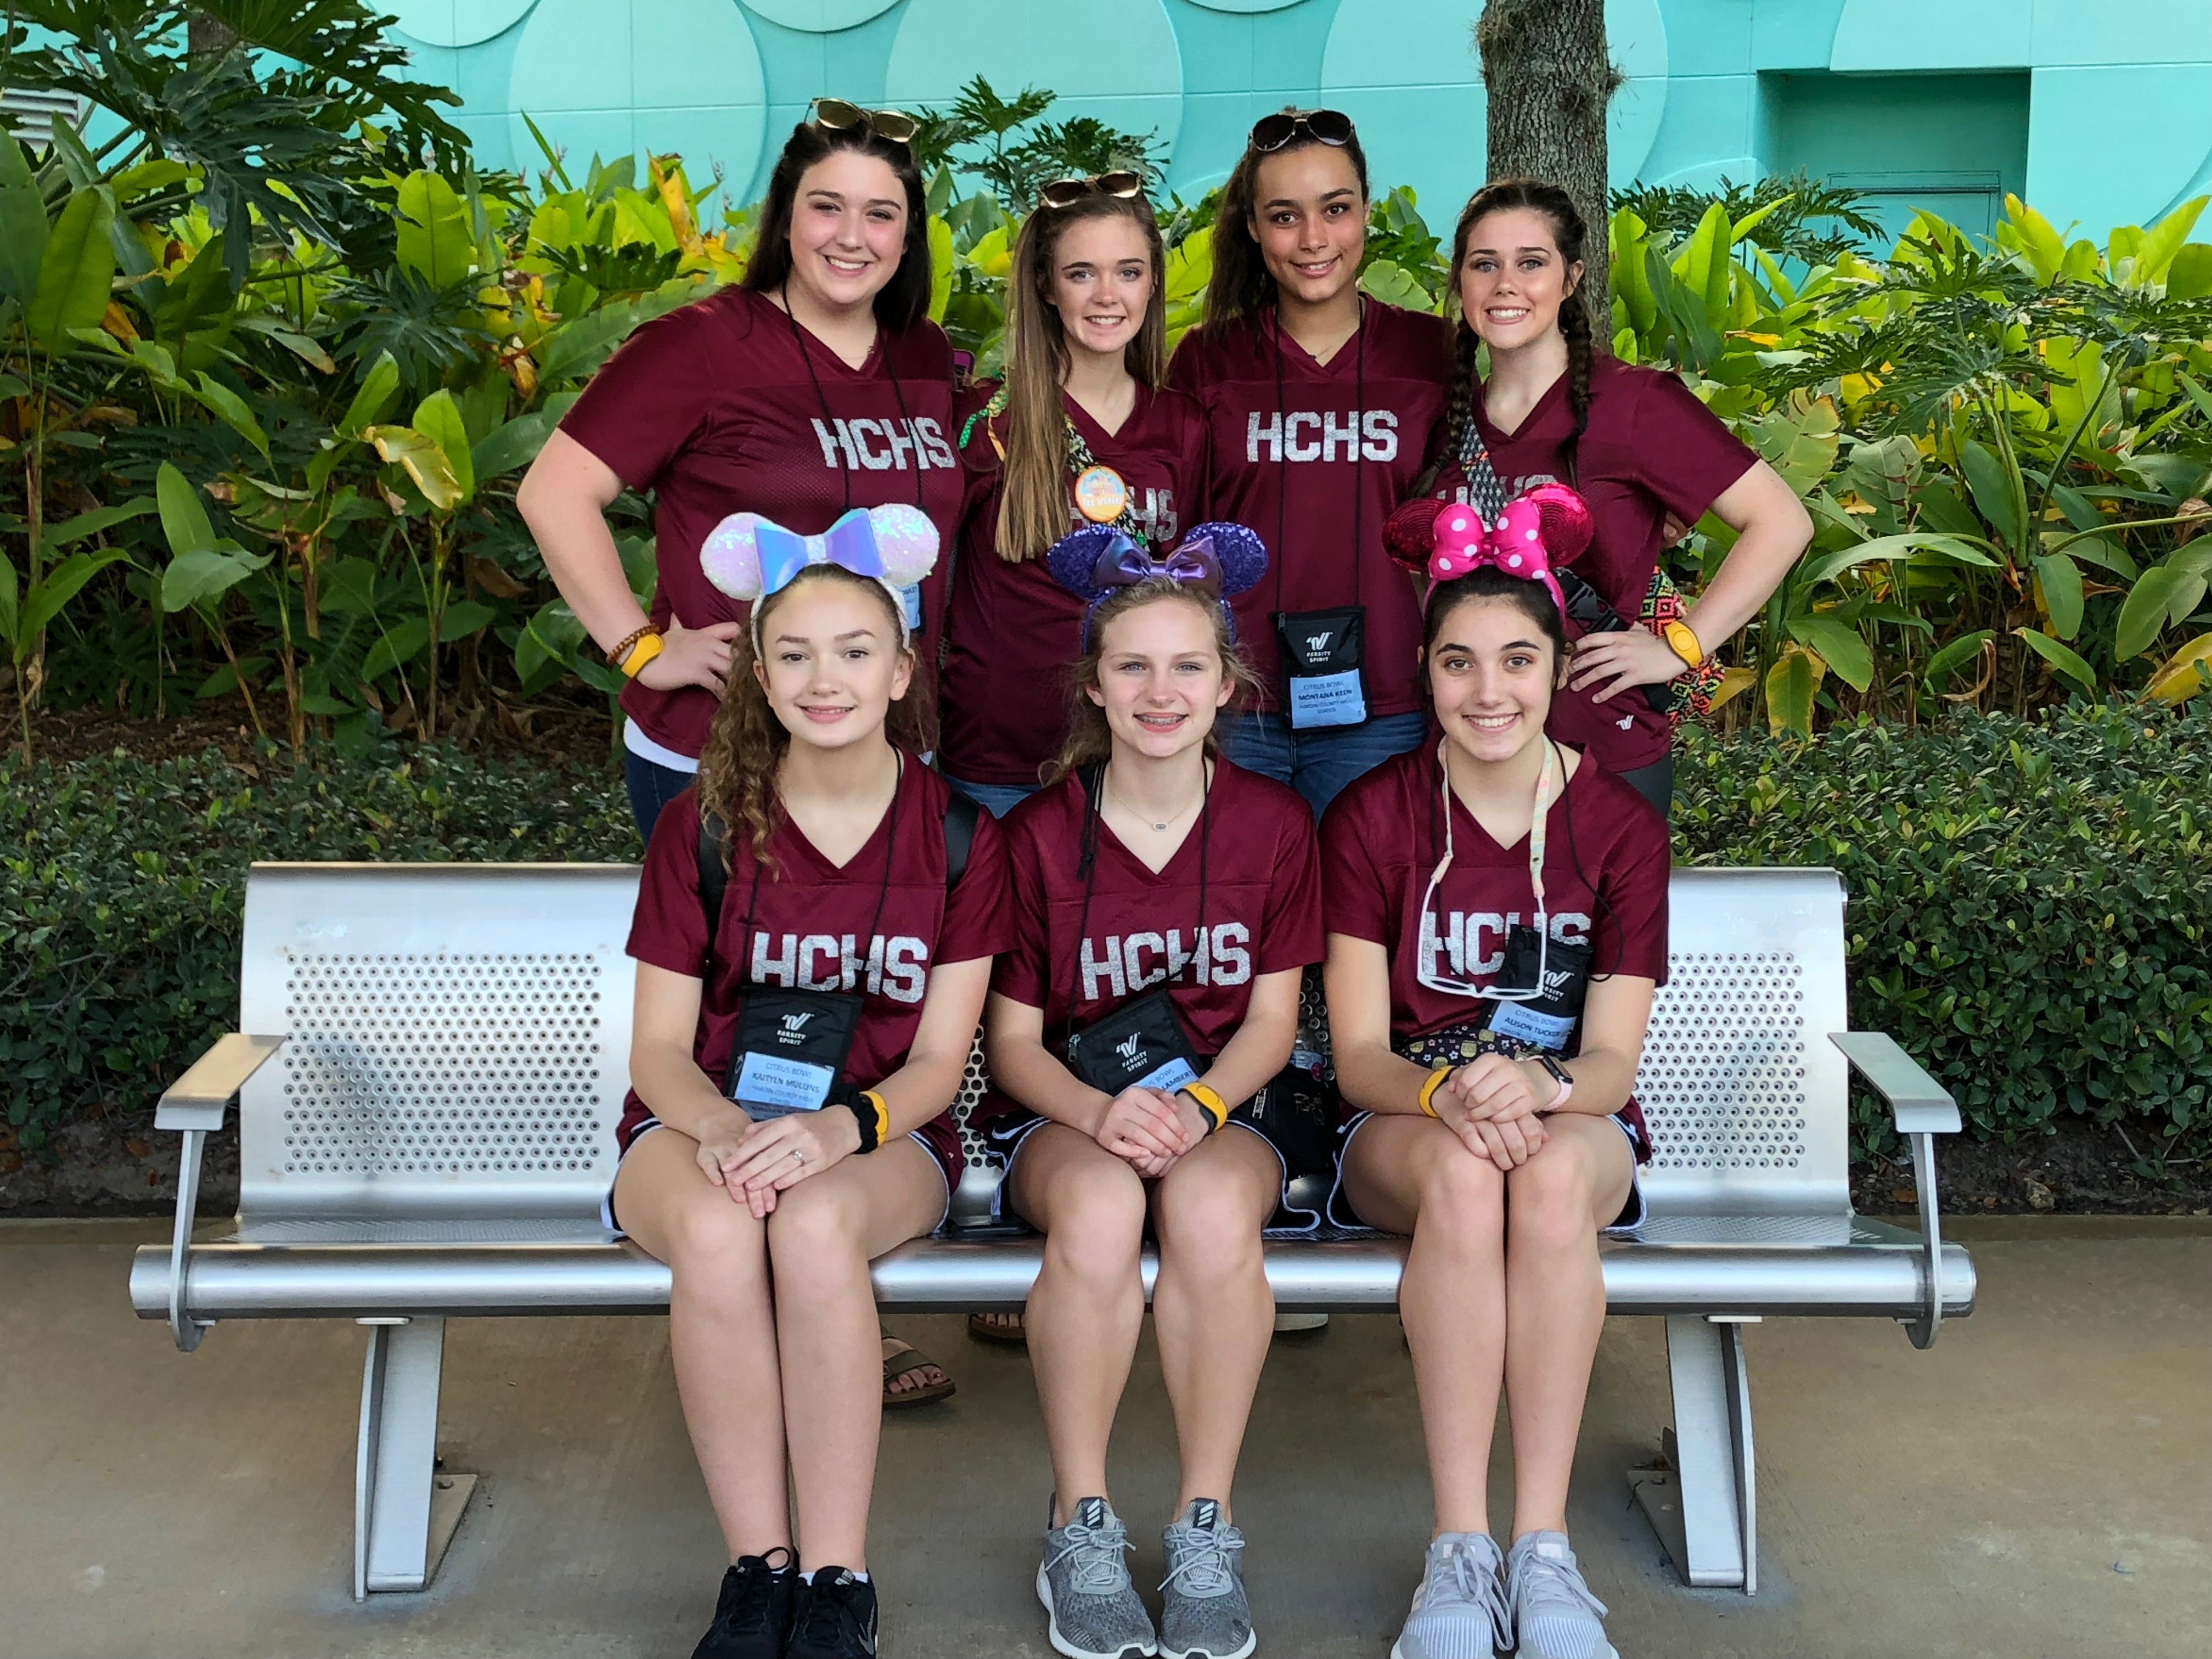 While in Florida for the Citrus Bowl pre-game show, the Hardin Co. cheer squad  were able to visit the Walt Disney World parks. At Animal Kindgom, pictured on the back row from left to right are Hannah Bromley, Meagan Screws, Montana Keen and Kimberlin Stanfill with Kaitlyn Mullins, Meredith Lambert and Allison Tucker sitting on the front row.